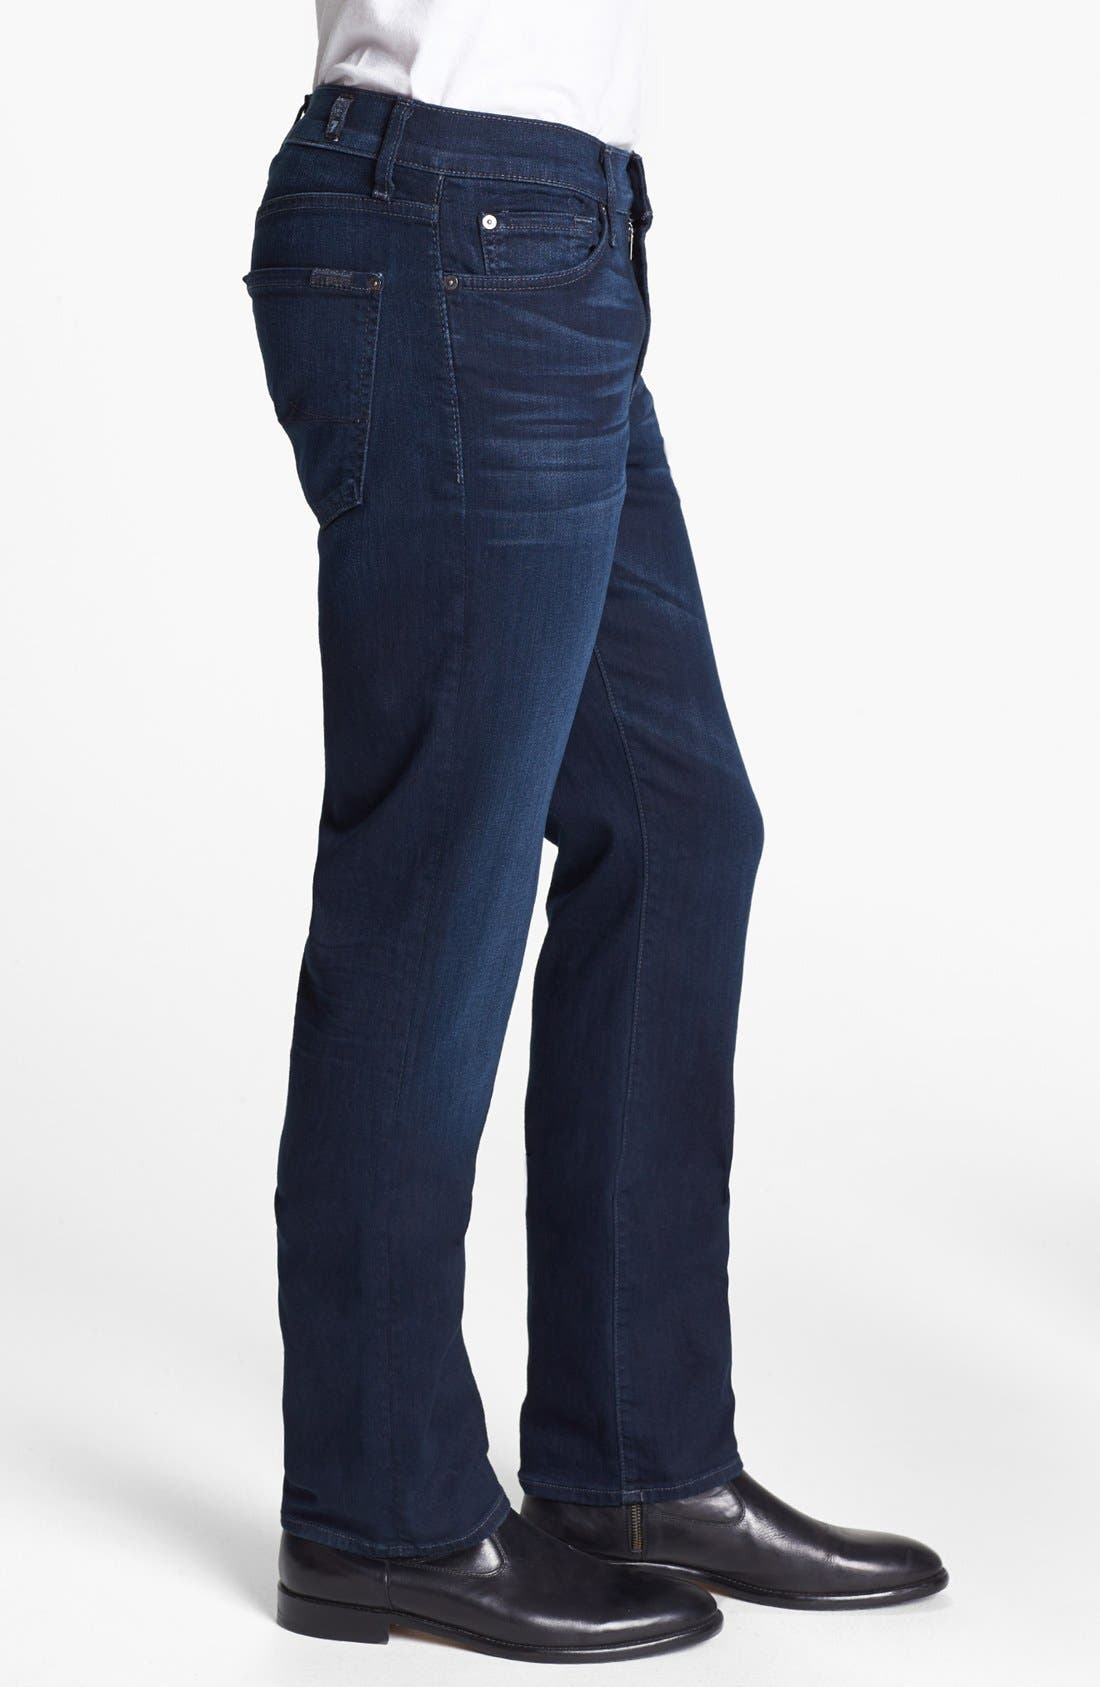 'Slimmy - Luxe Performance' Slim Fit Jeans,                             Alternate thumbnail 4, color,                             402